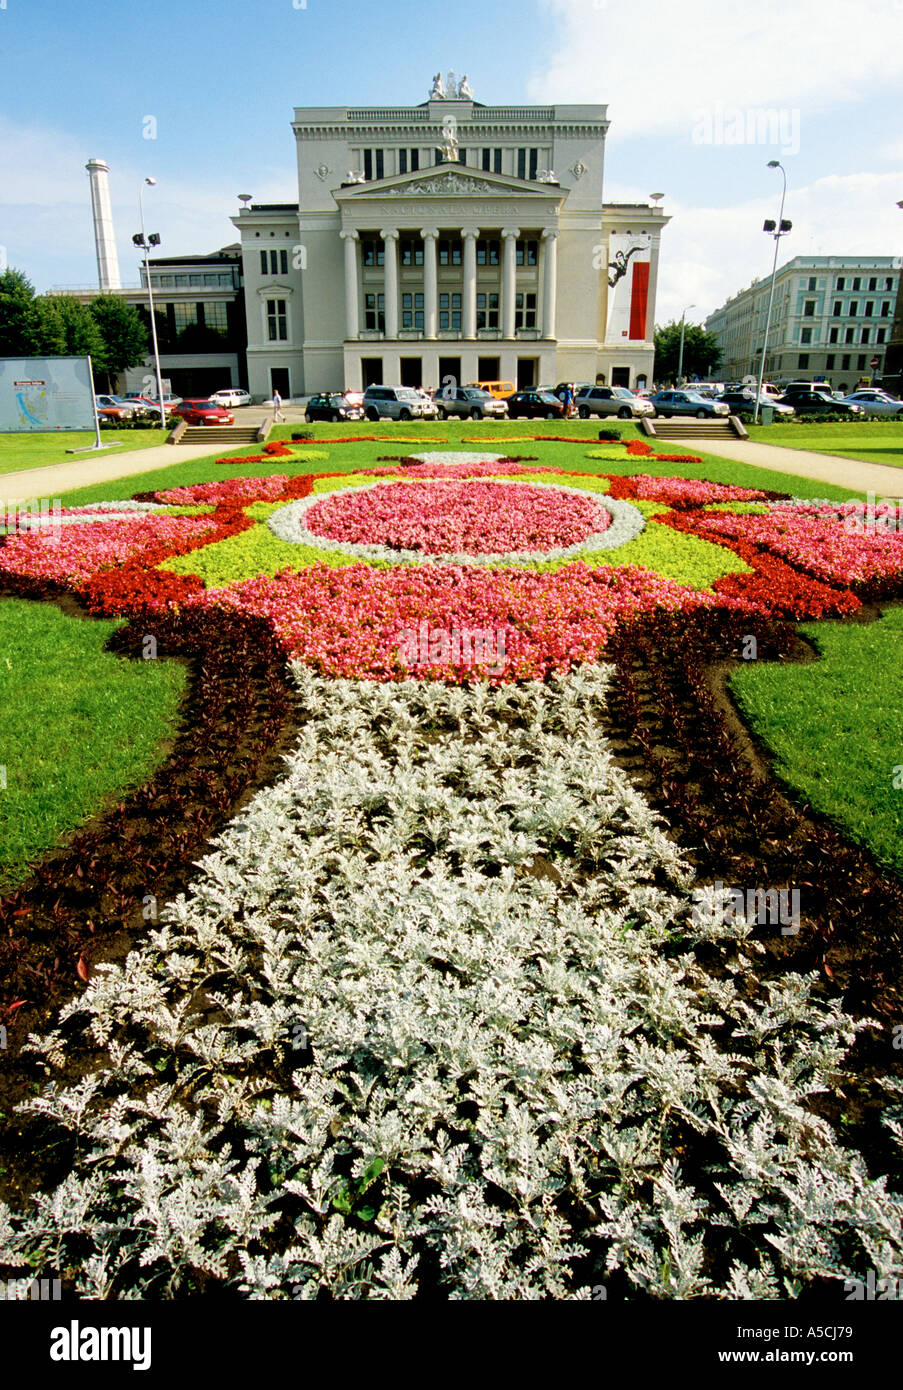 Riga Latvia Flower Garden Design In Front Of The National Opera House